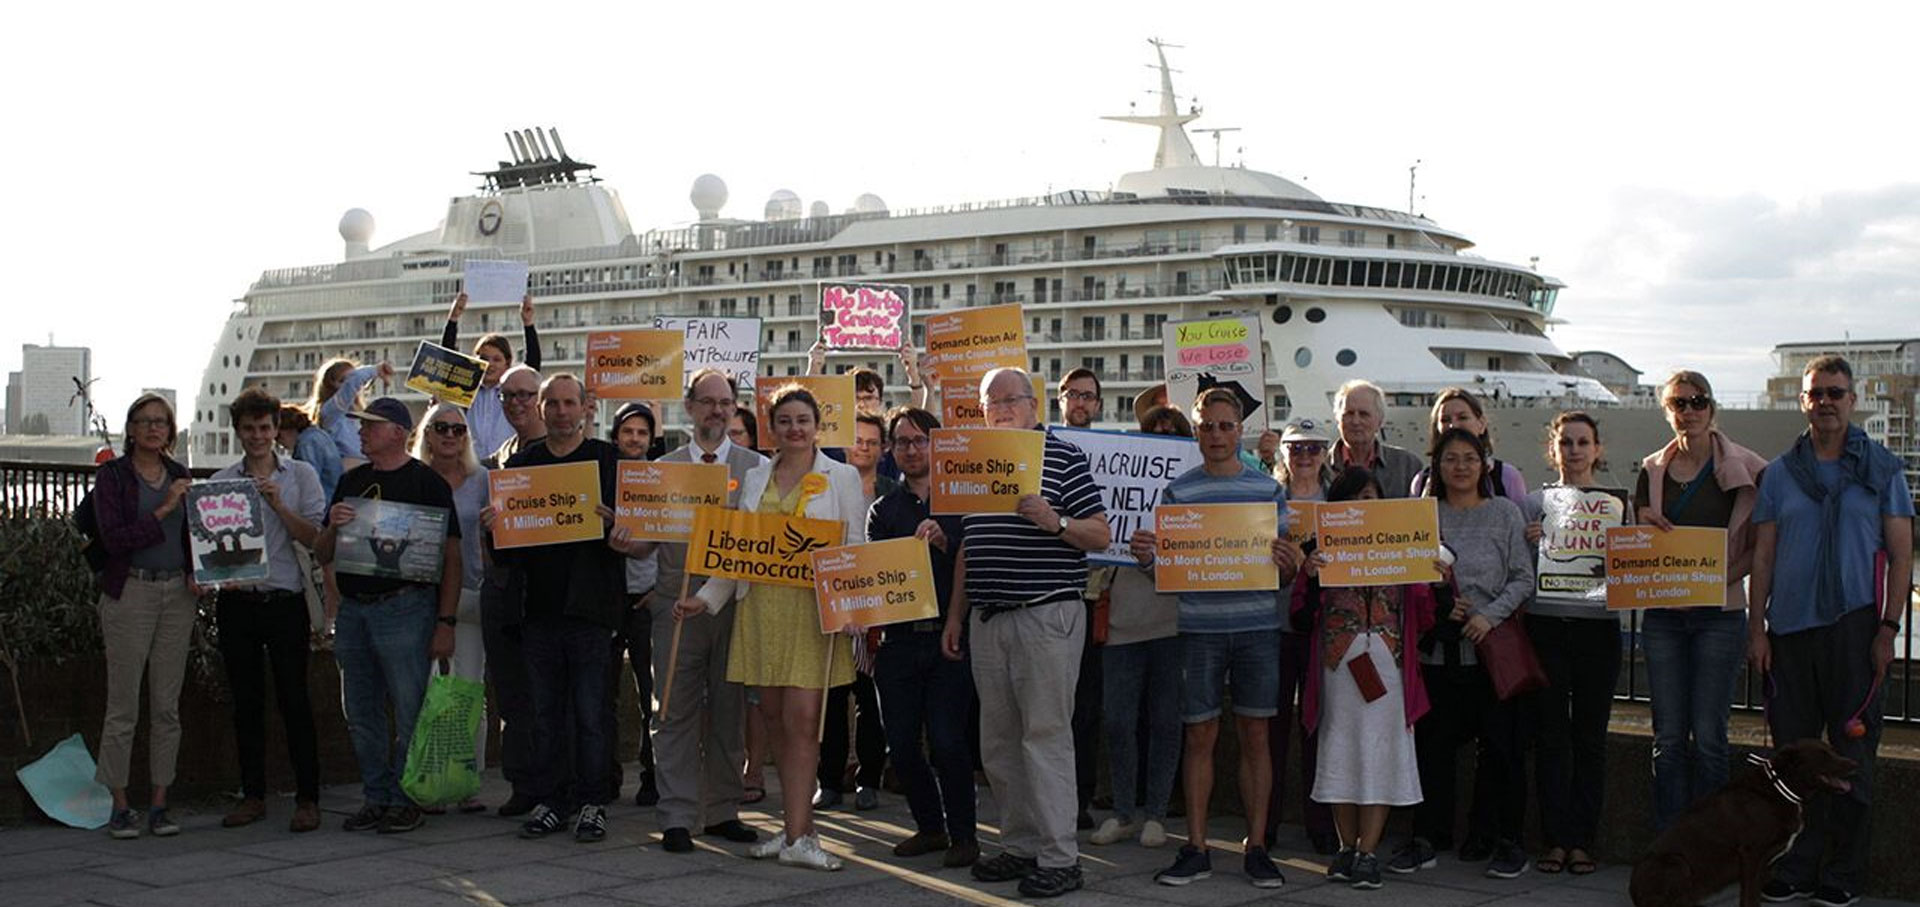 Petition against Cruise Ships Mooring inside ULEZ